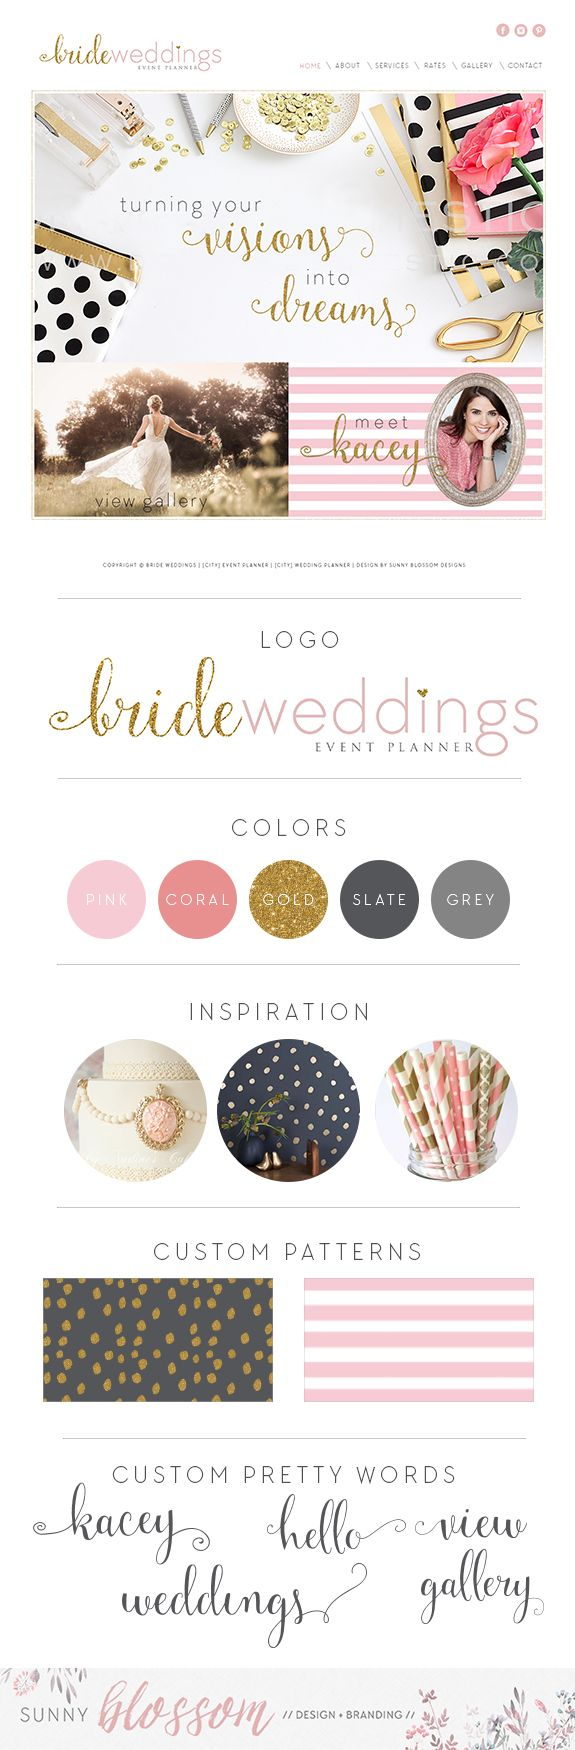 Custom website design, Website design ideas, wedding planner website, photography website design, design branding, photography branding, custom logo design, custom branding design, modern website design, clean website design, glamour website design